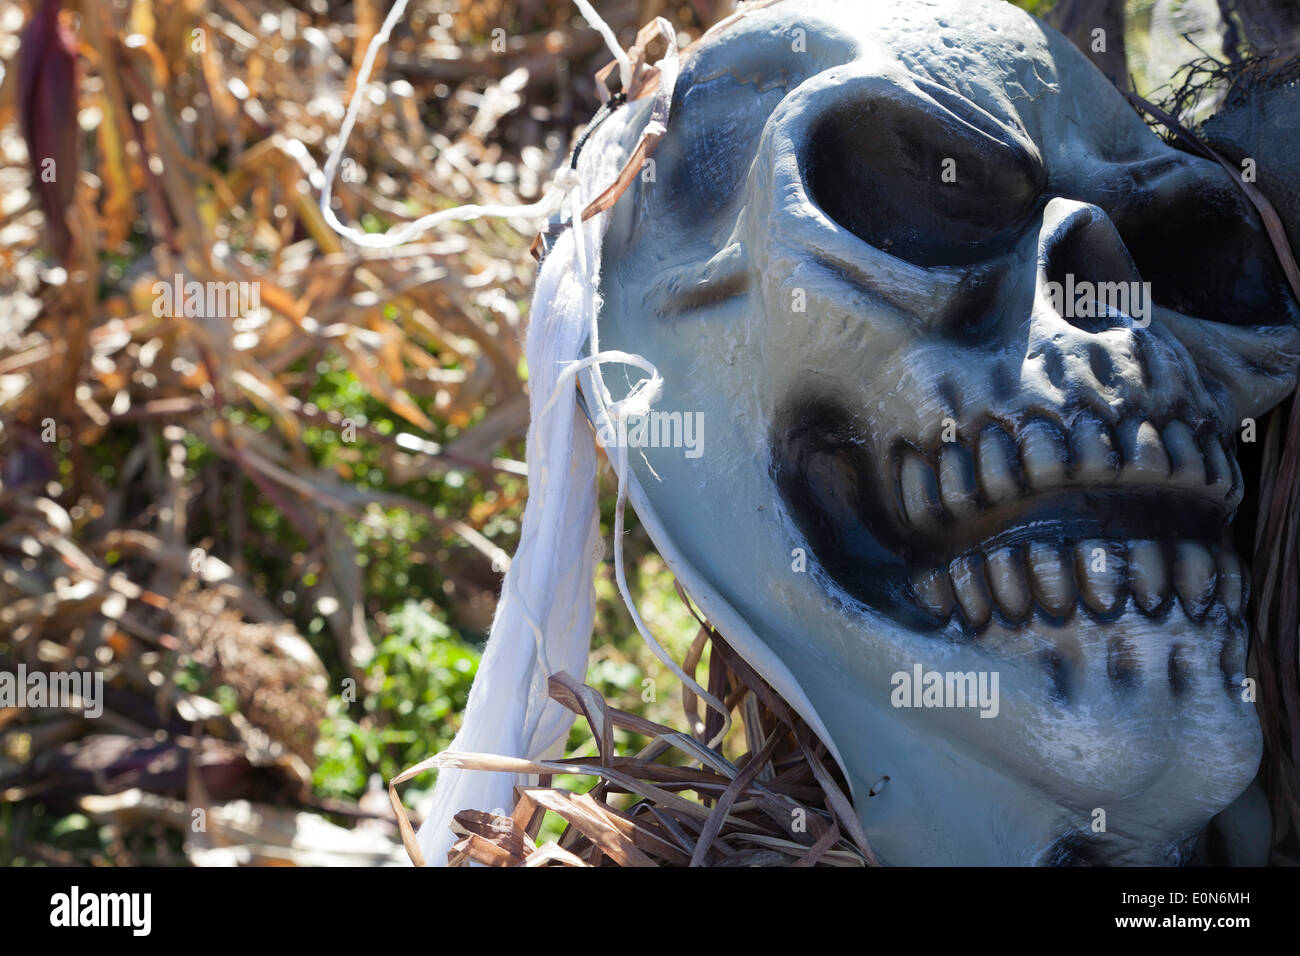 Ghoulish Skeletal Parts Are Used As Halloween Decorations In A Corn